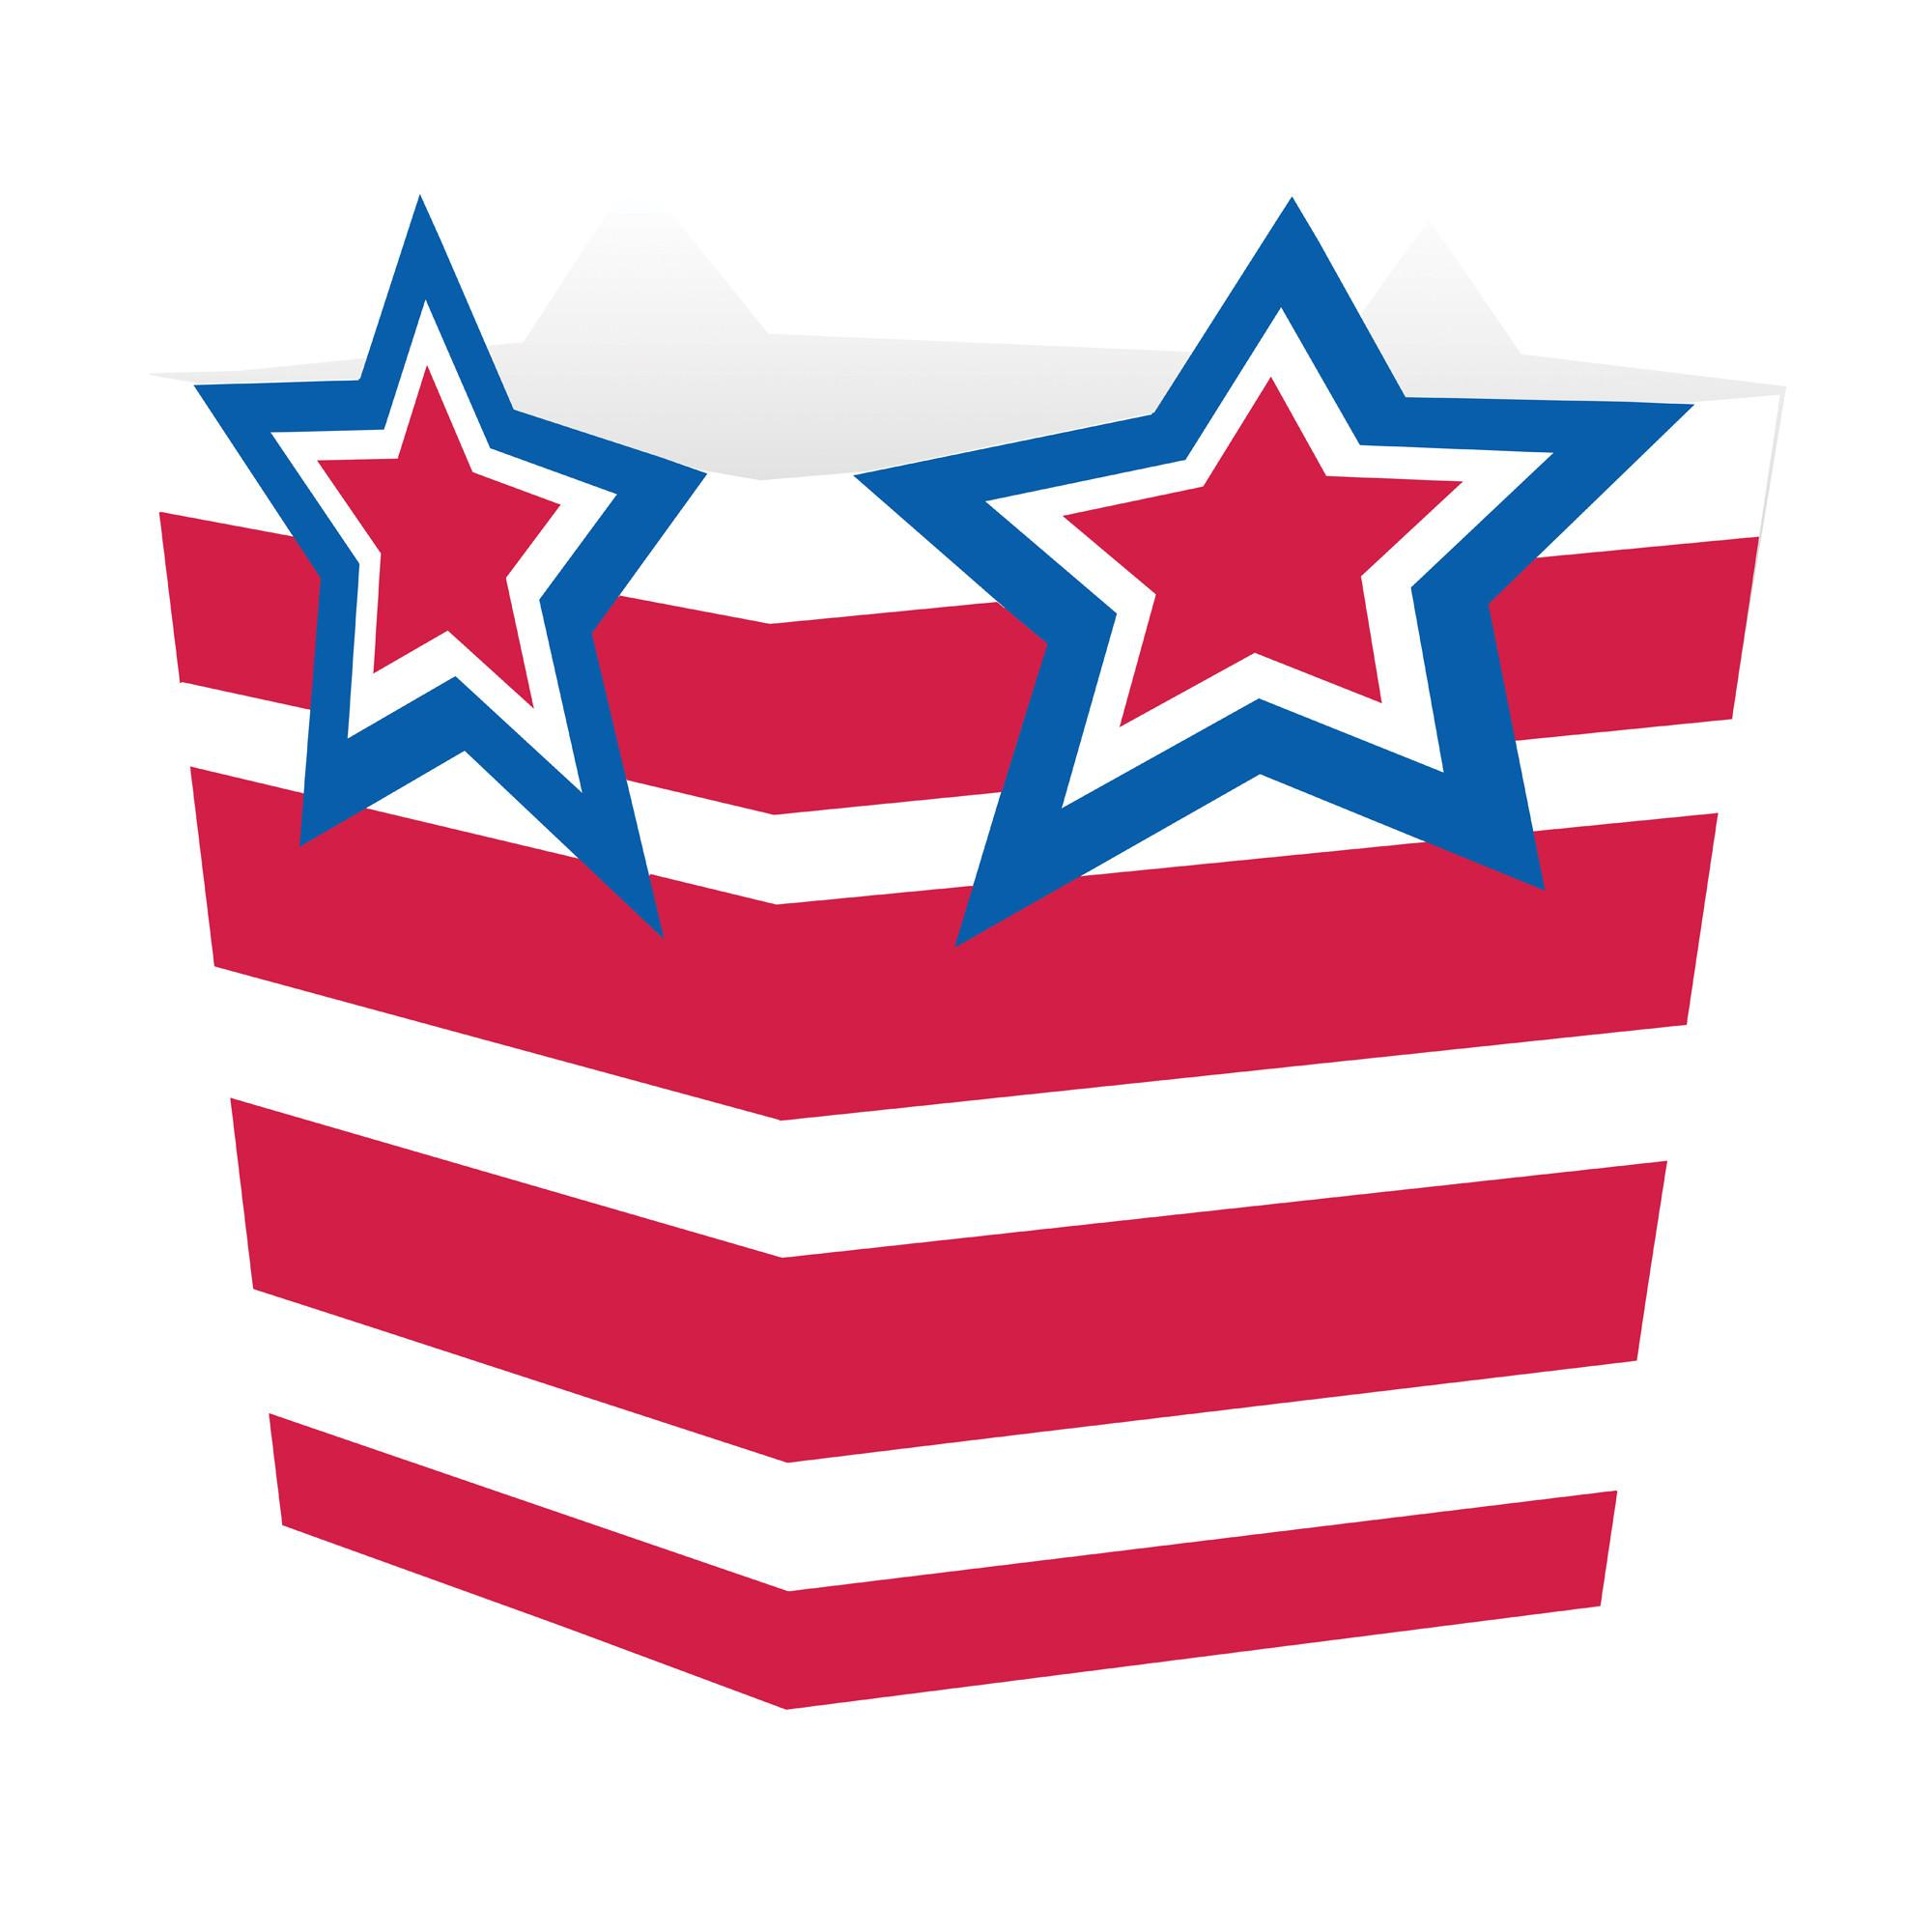 AMERICAN THEMED DIE-CUT TREAT BOXES - PACK OF 4